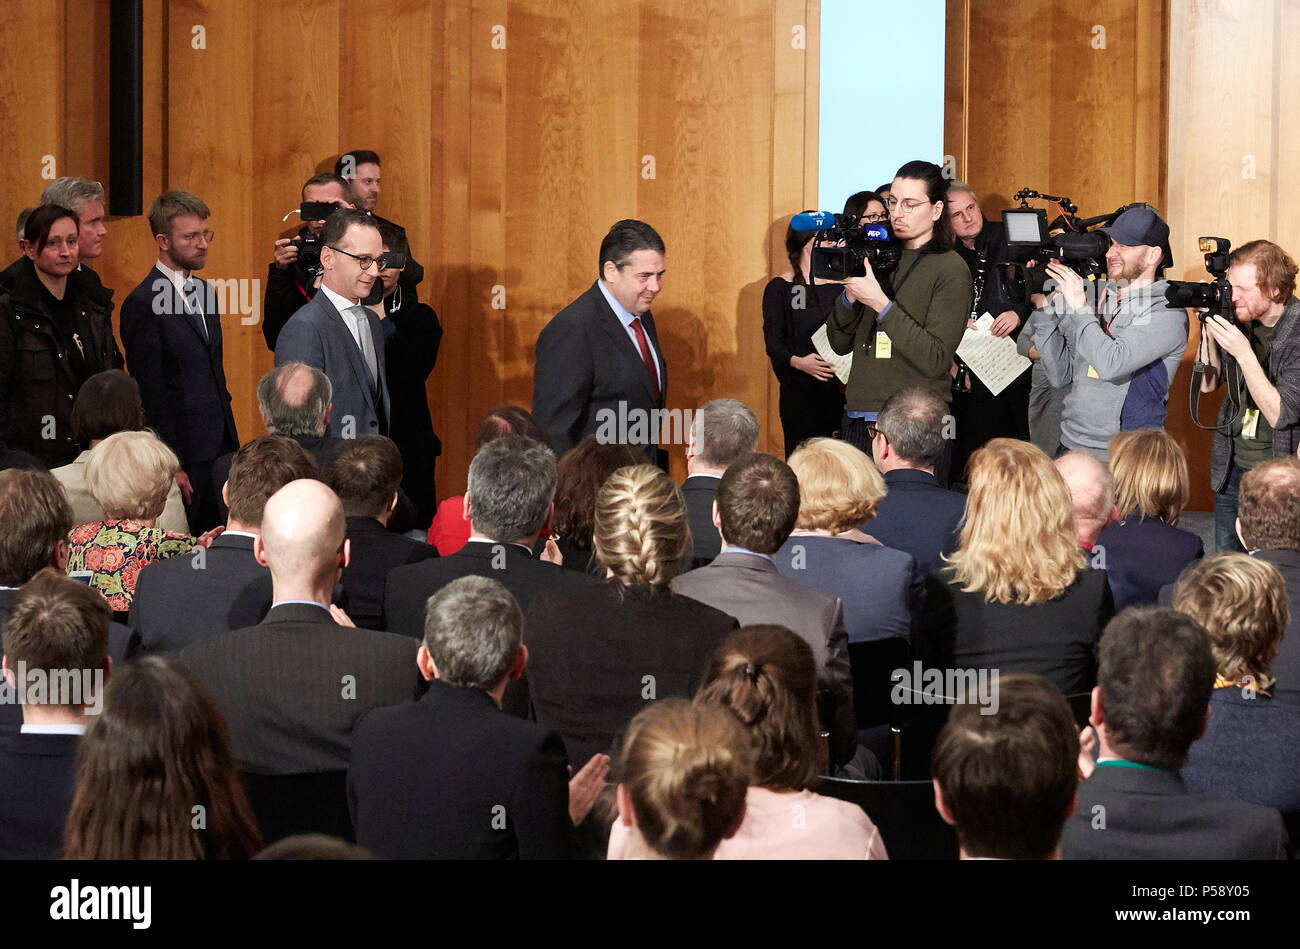 Berlin, Germany - Sigmar Gabriel and Heiko Maas at the official handover in the World Hall of the Foreign Ministry. - Stock Image